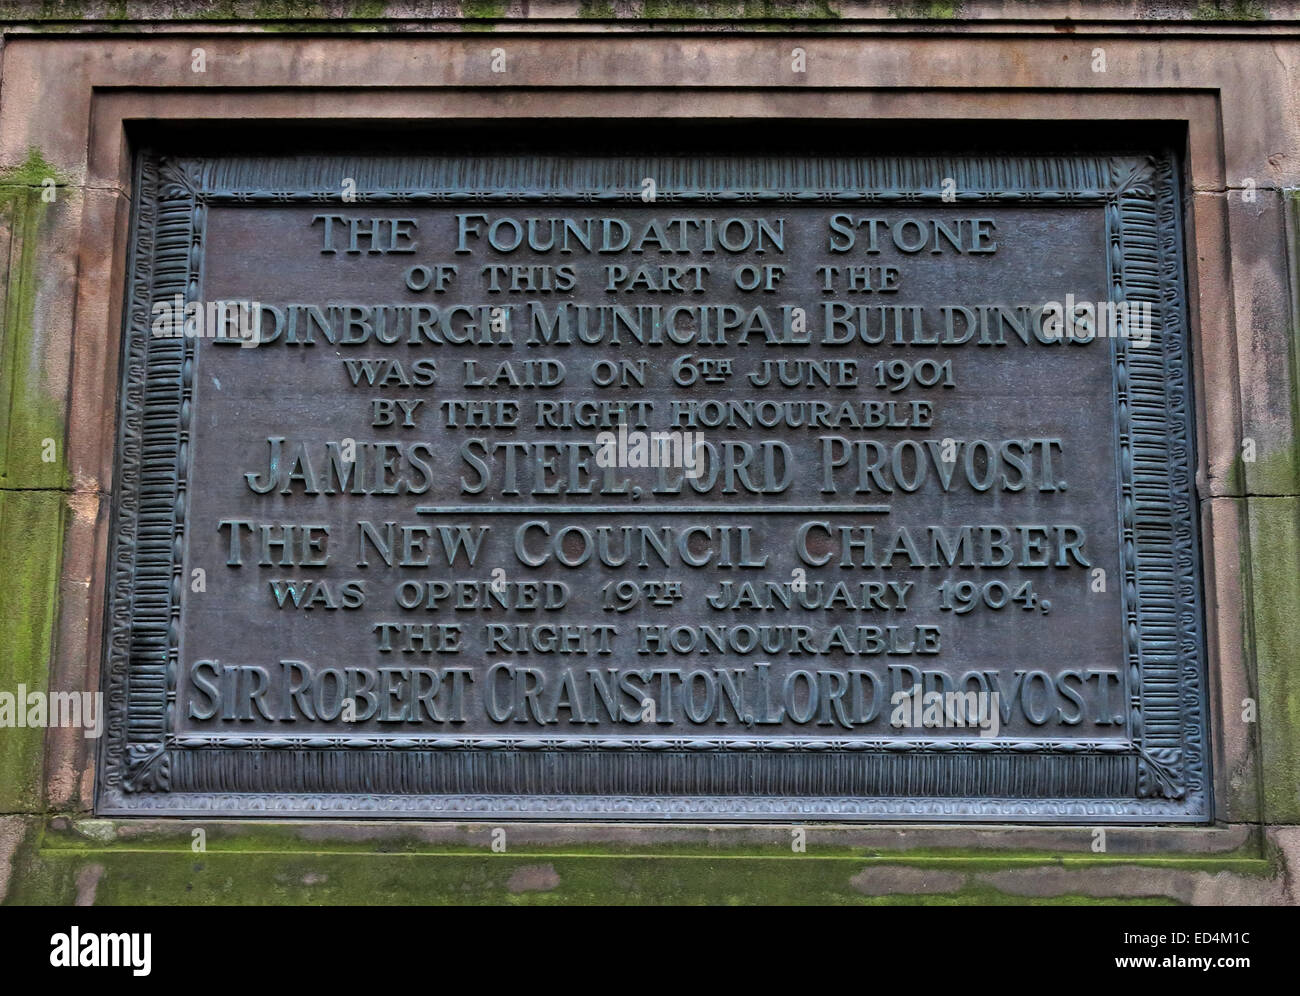 Foundation stone of the Edinburgh Municipal Buildings, Scotland, UK - Stock Image